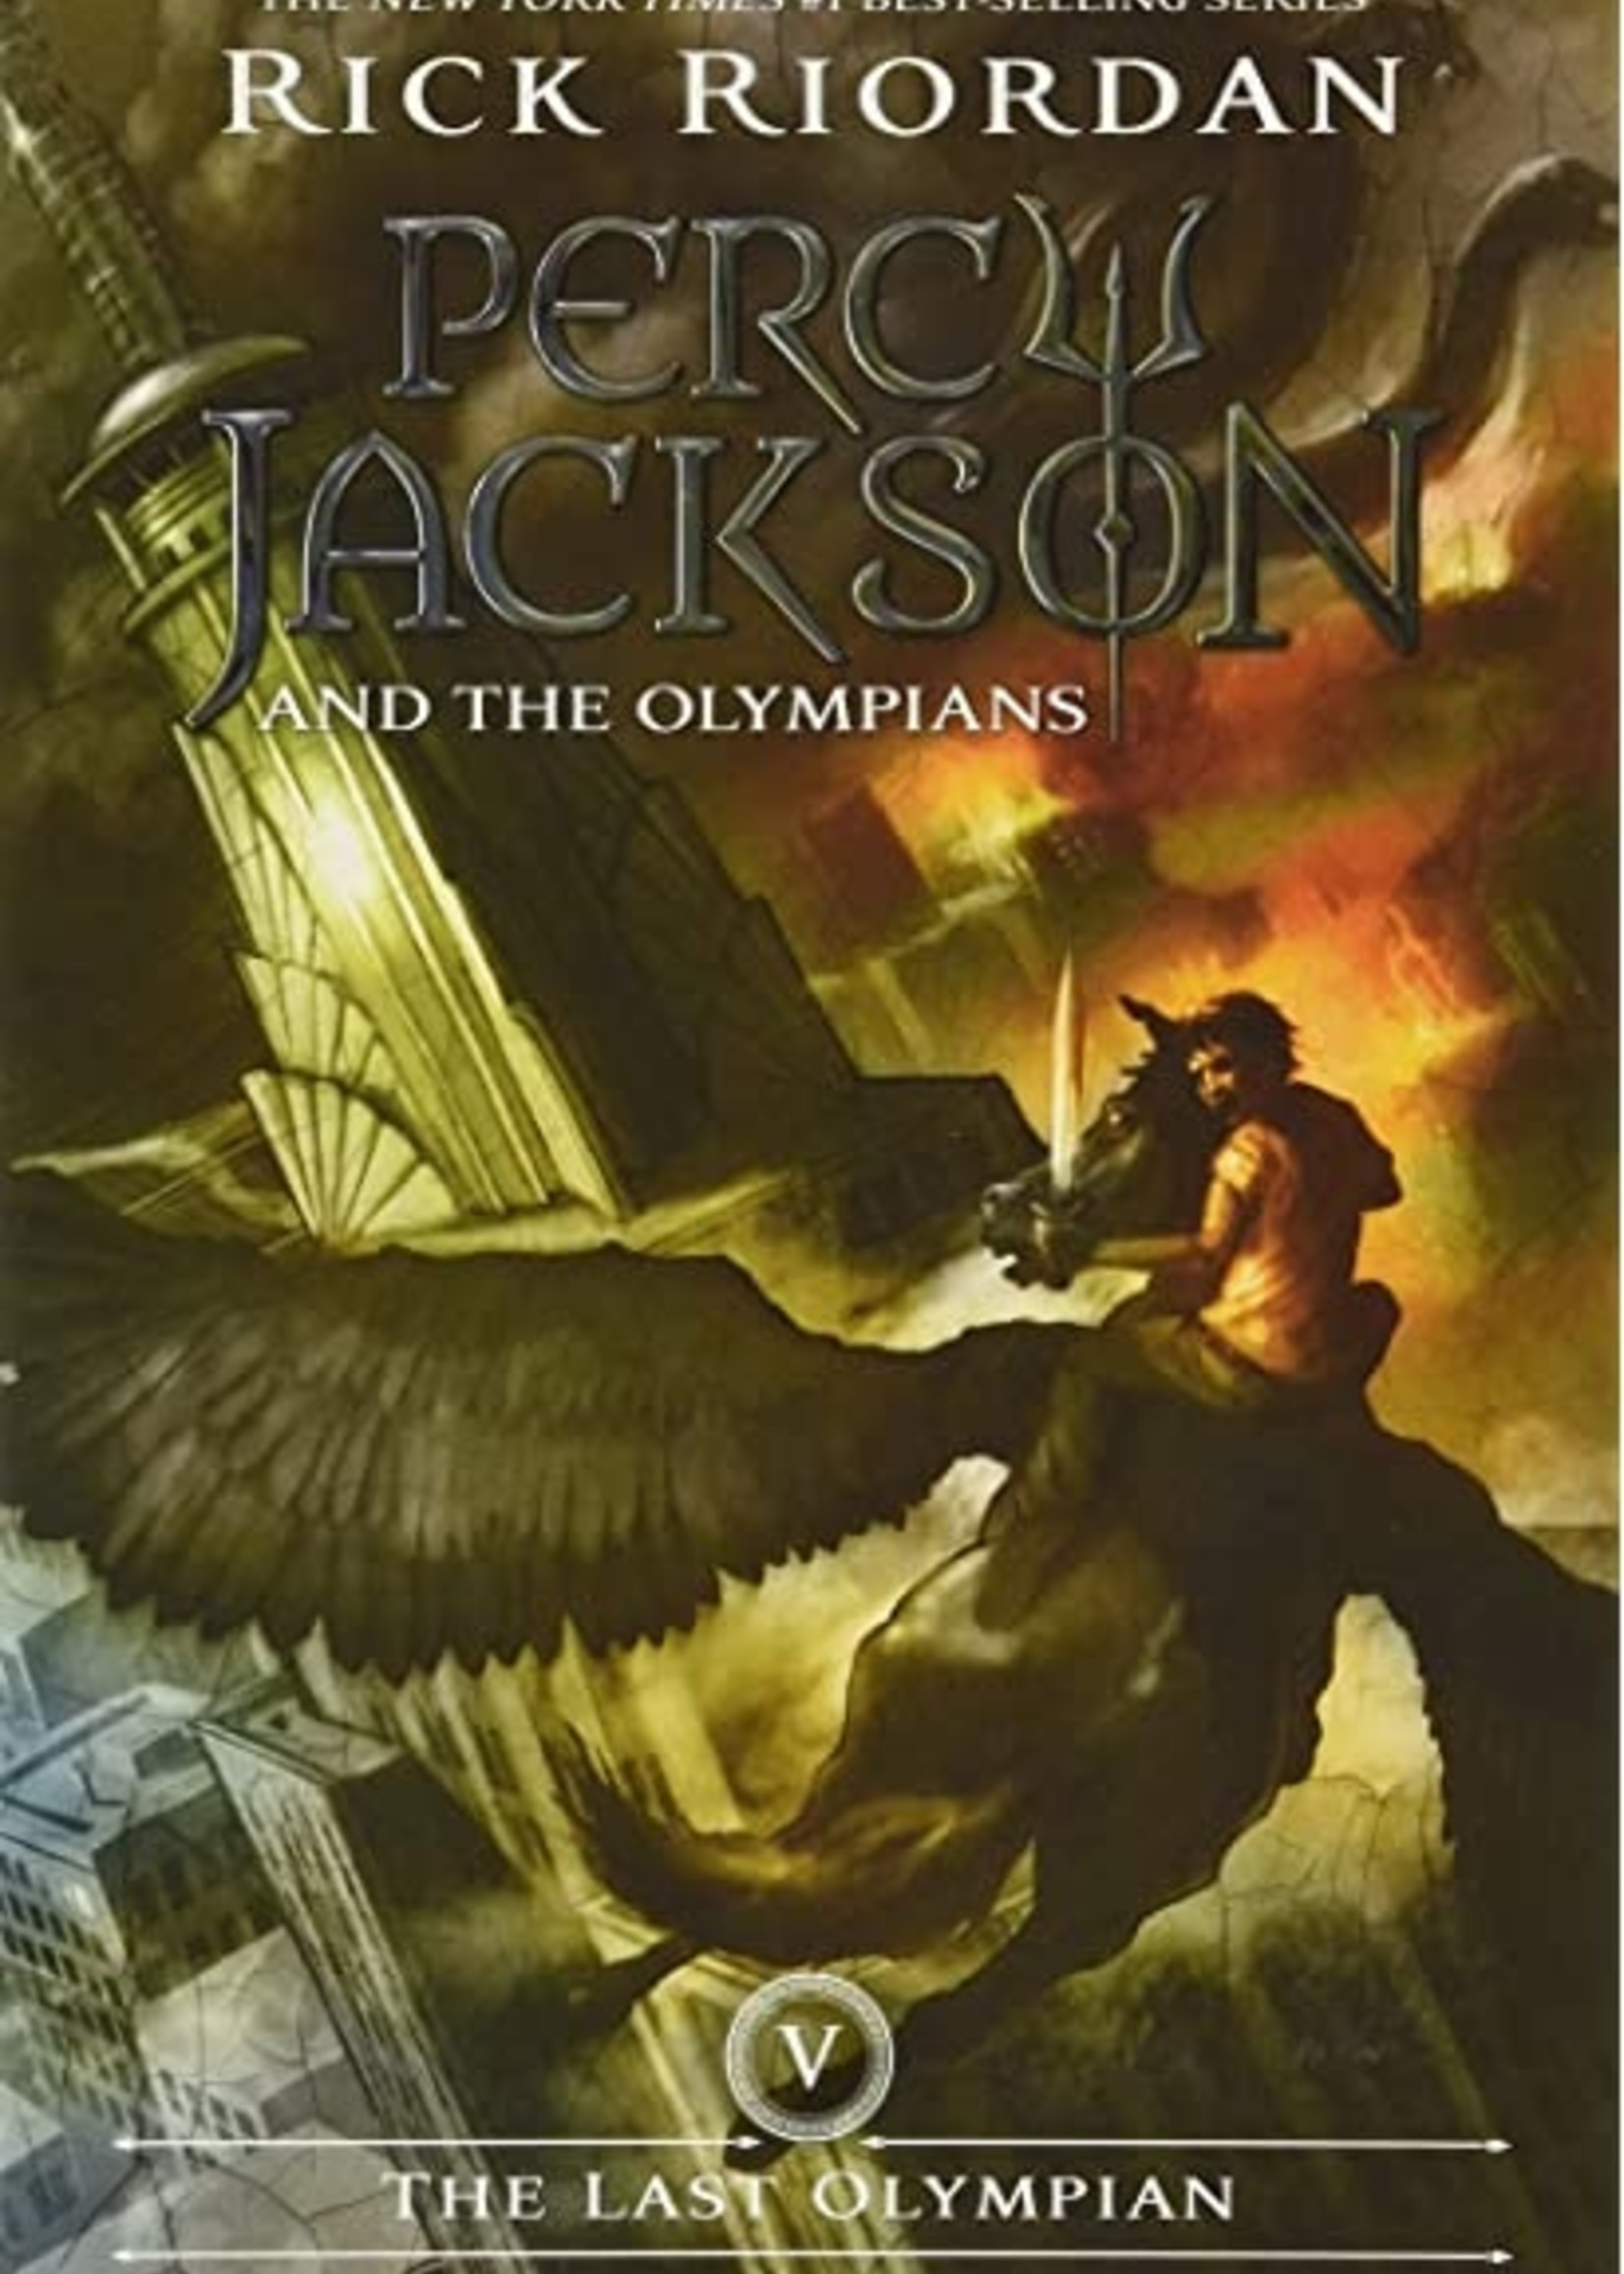 Percy Jackson and the Olympians #05, The Last Olympian - Paperback